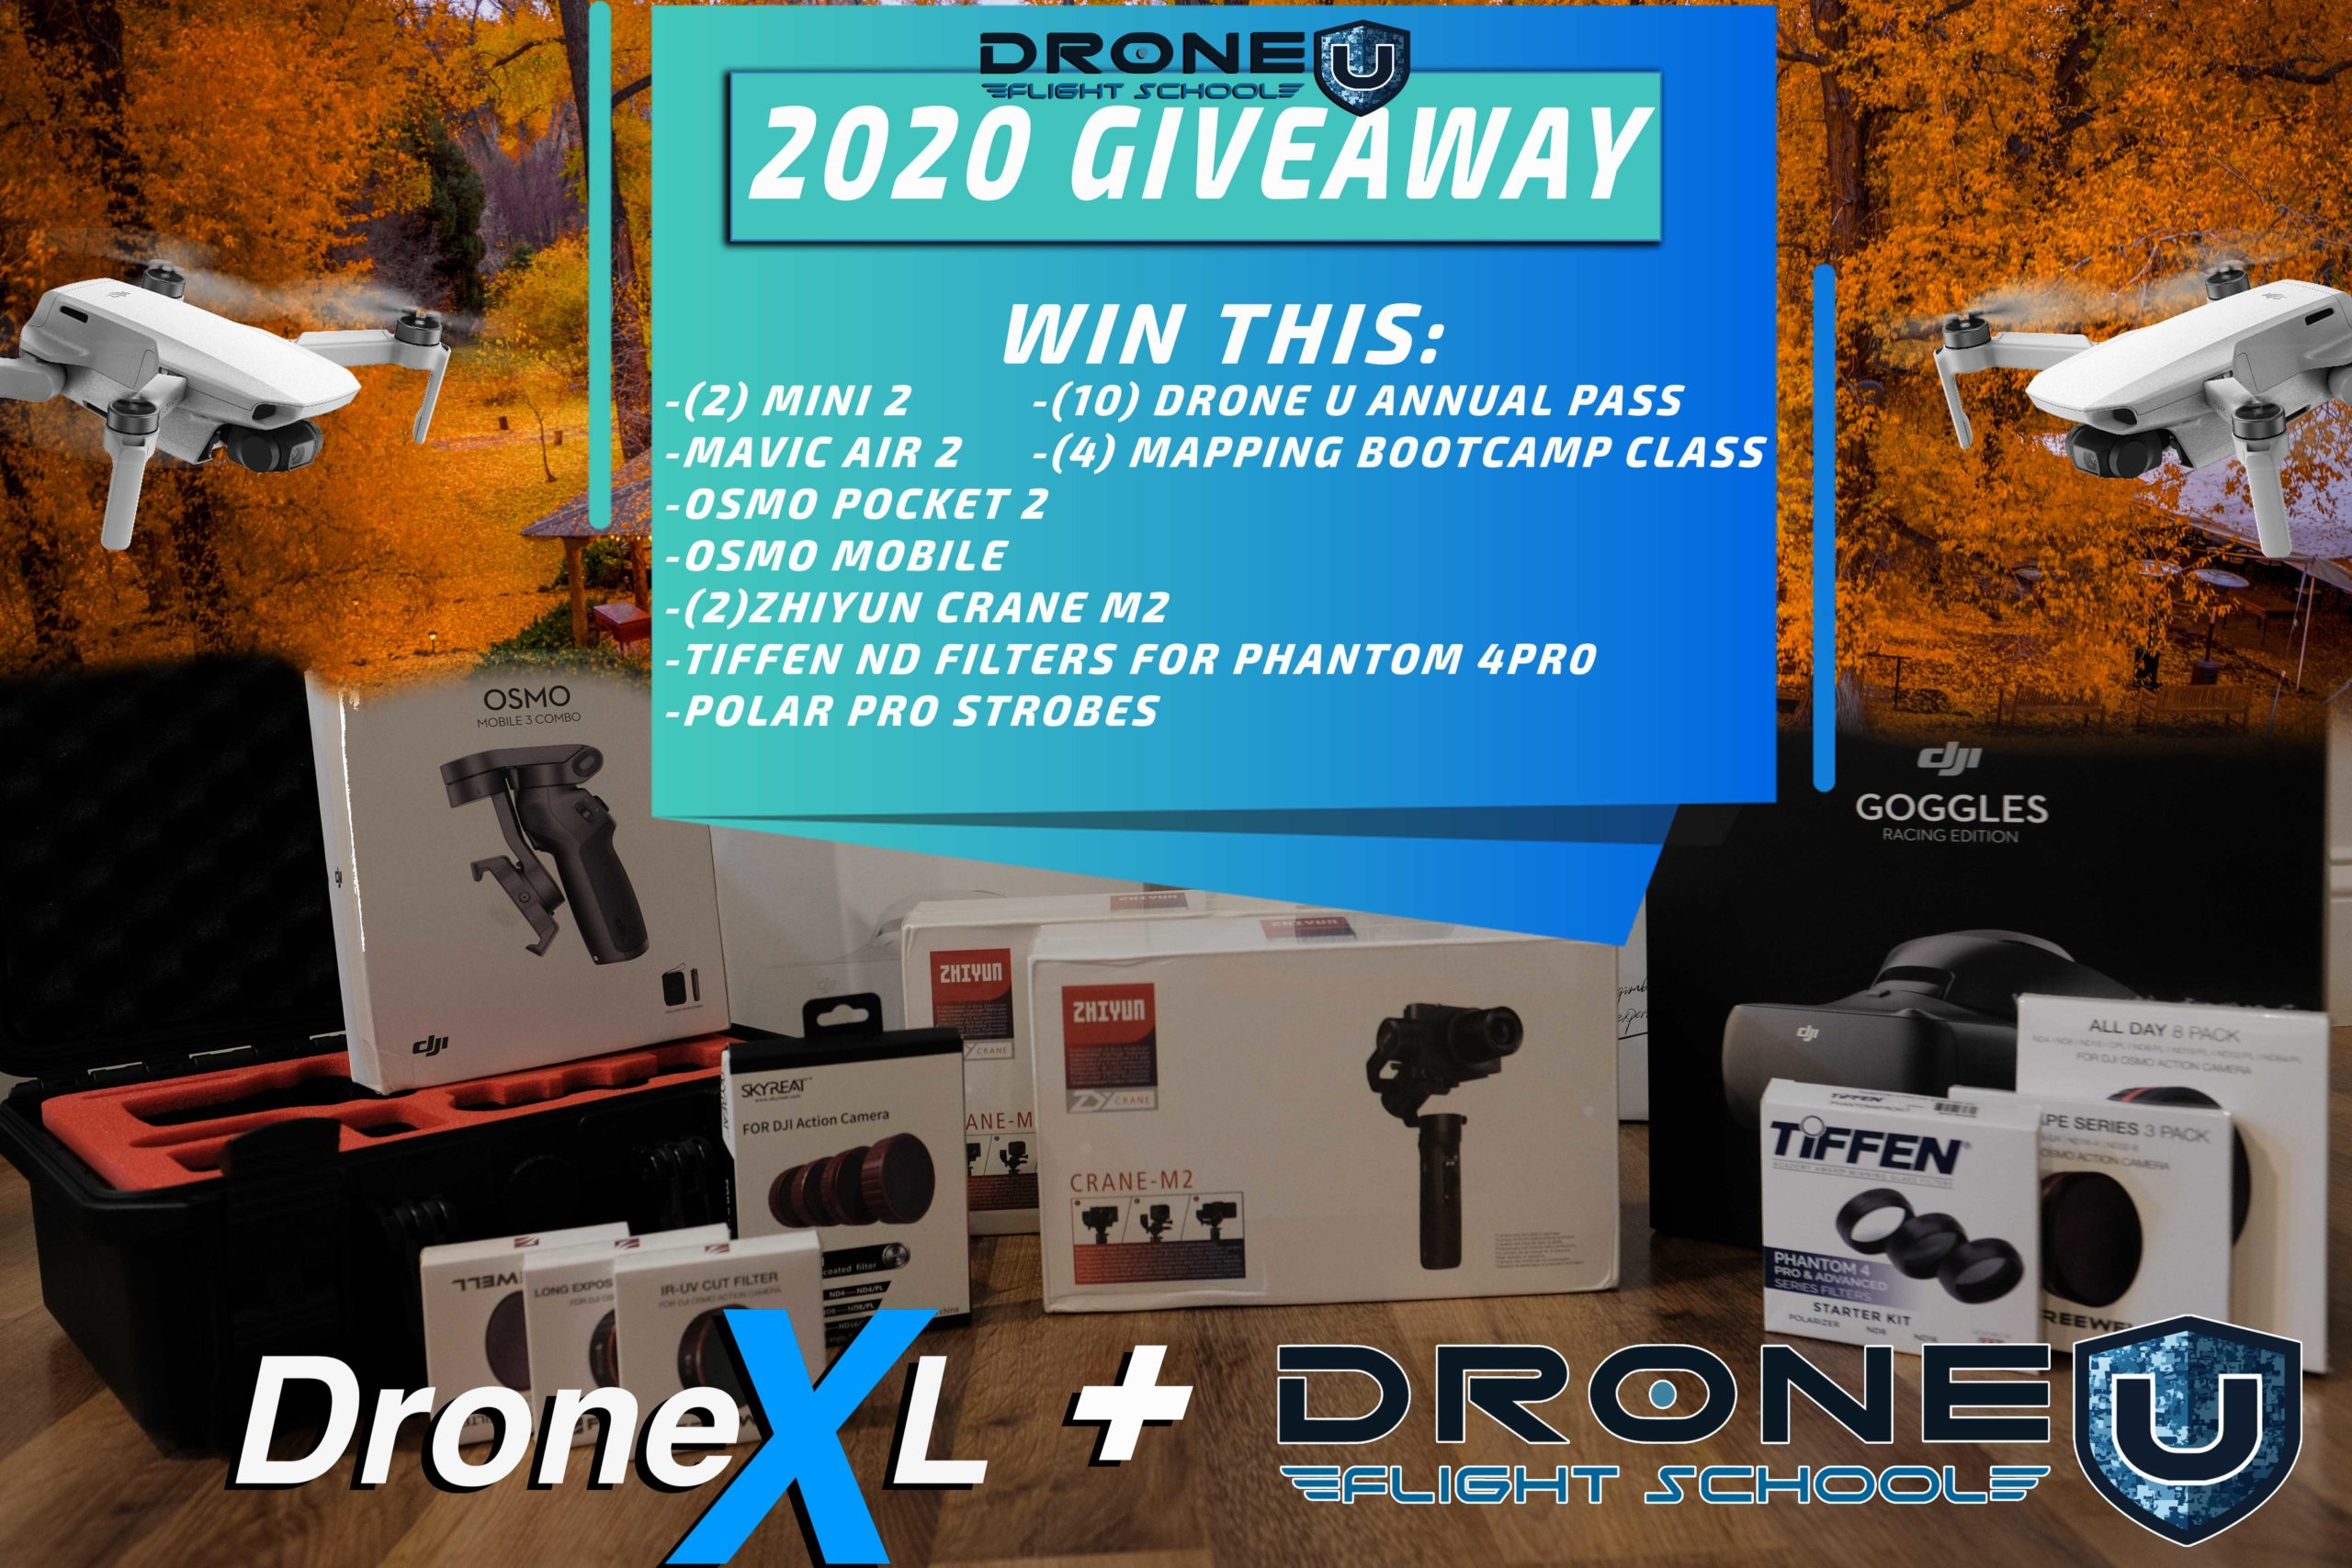 online contests, sweepstakes and giveaways - 2020 Thanksgiving Giveaway by Drone U & Drone XL